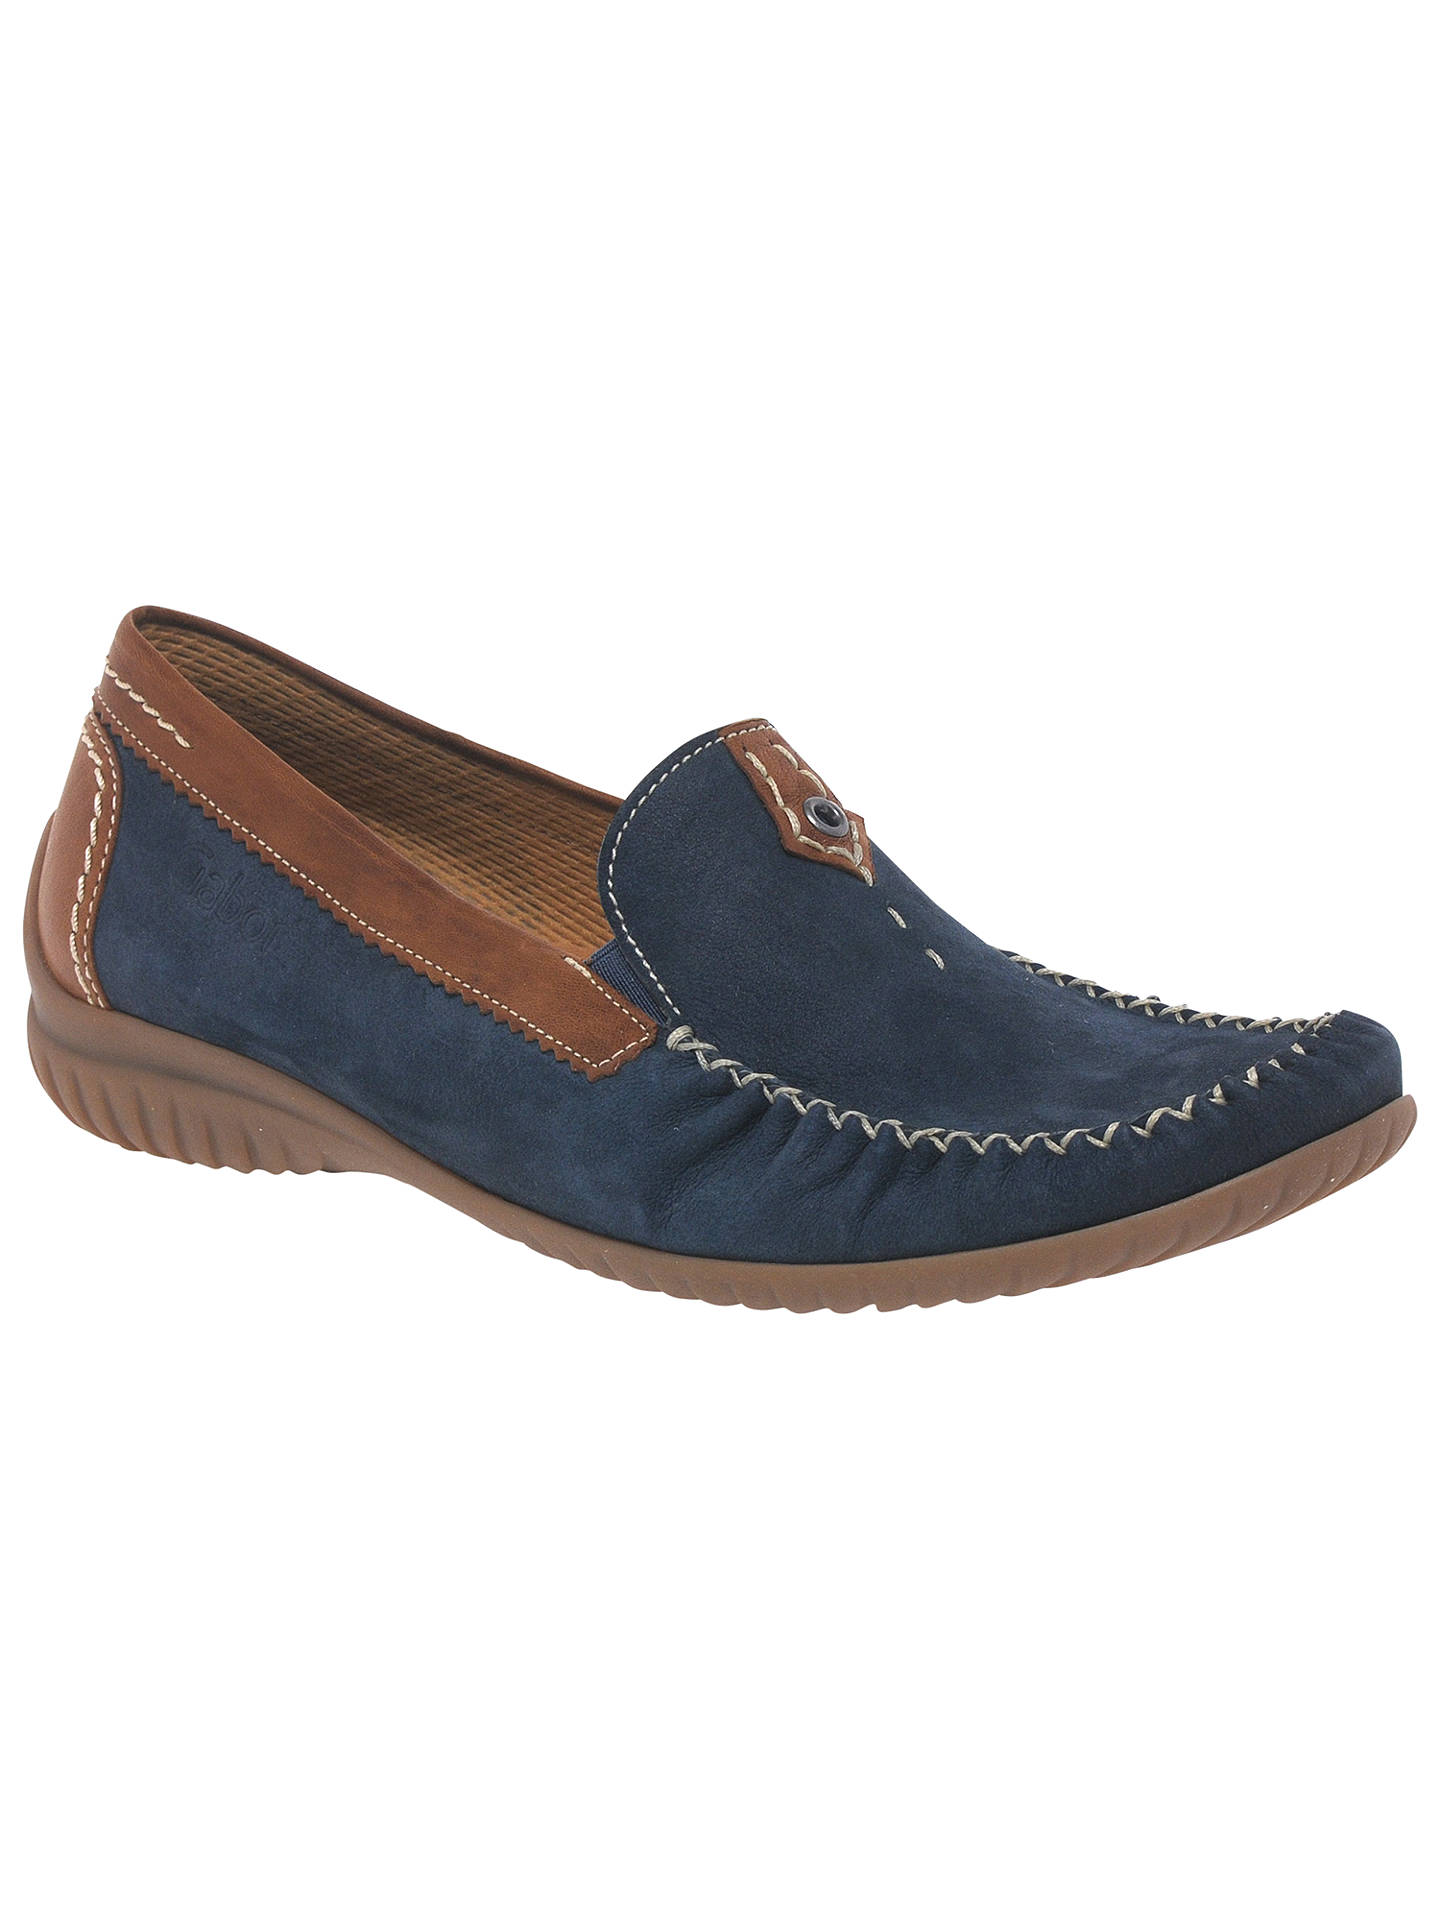 9c16350f16e6 Gabor California Wide Fit Loafers at John Lewis   Partners